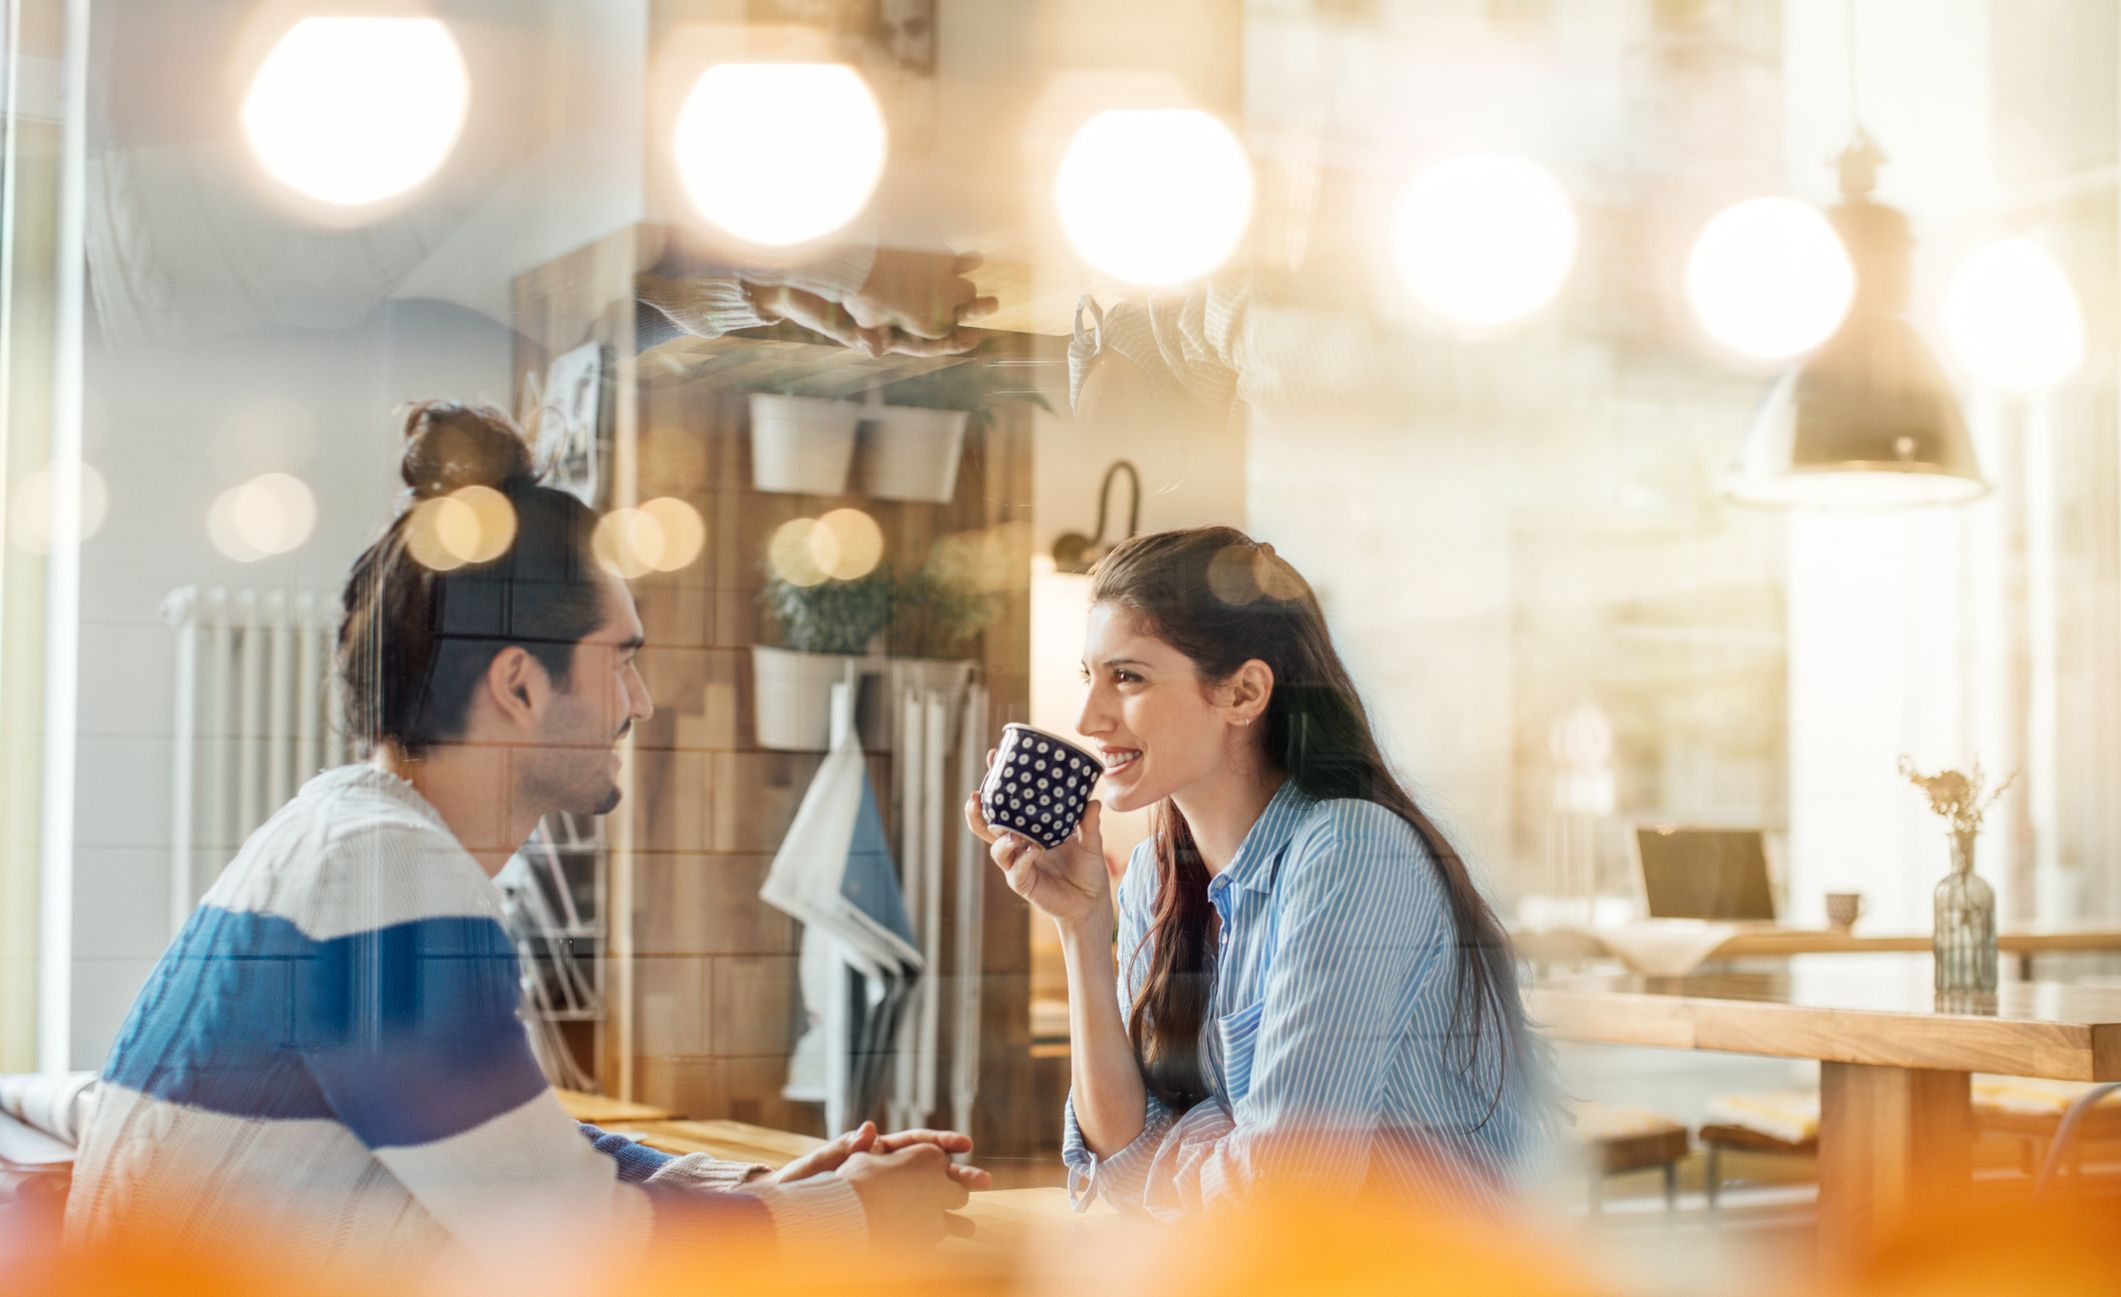 Woman having coffee while talking with man in cafe